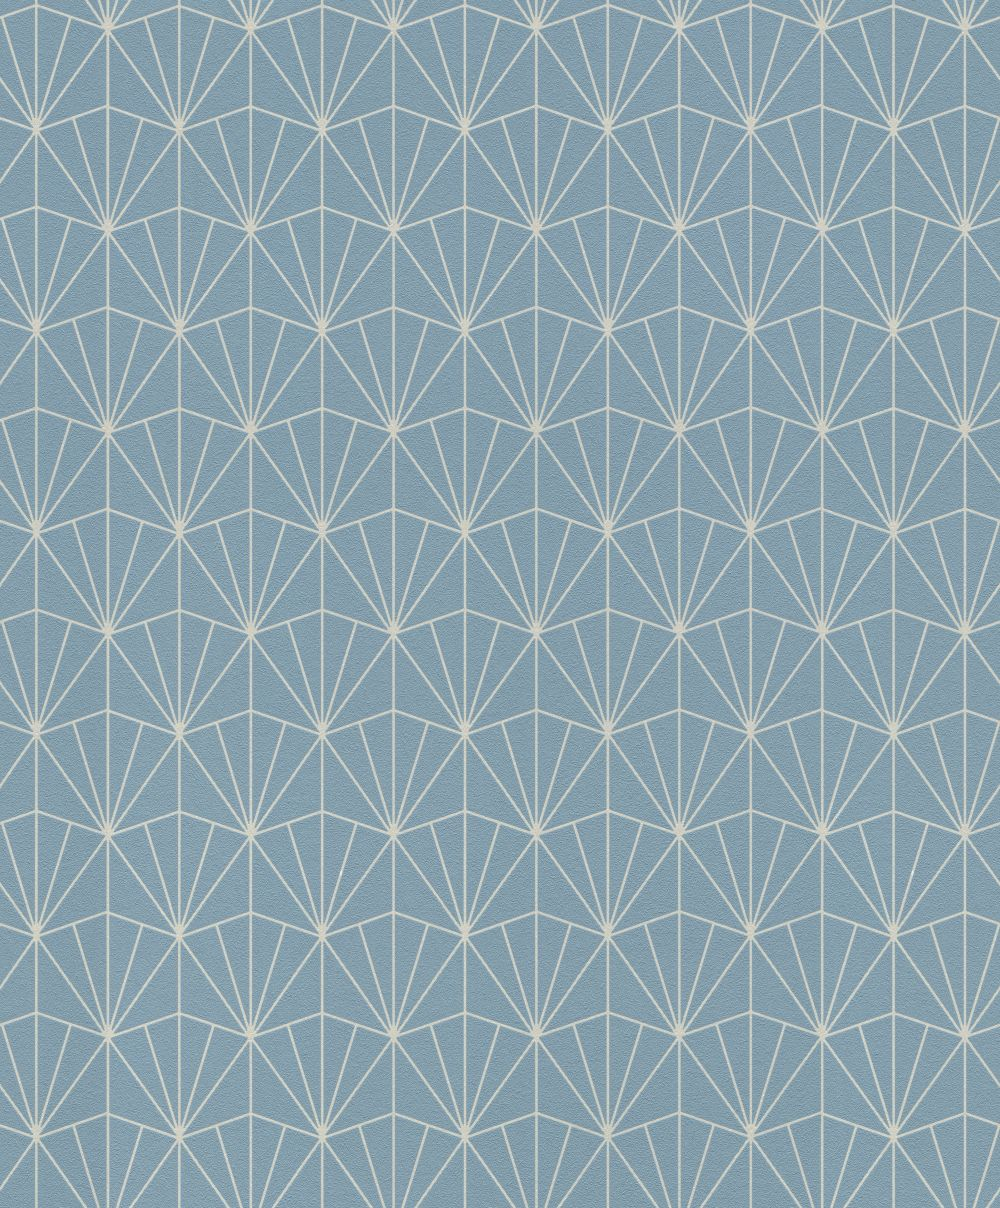 Albany Deco Diamond Light Blue Wallpaper - Product code: 434057